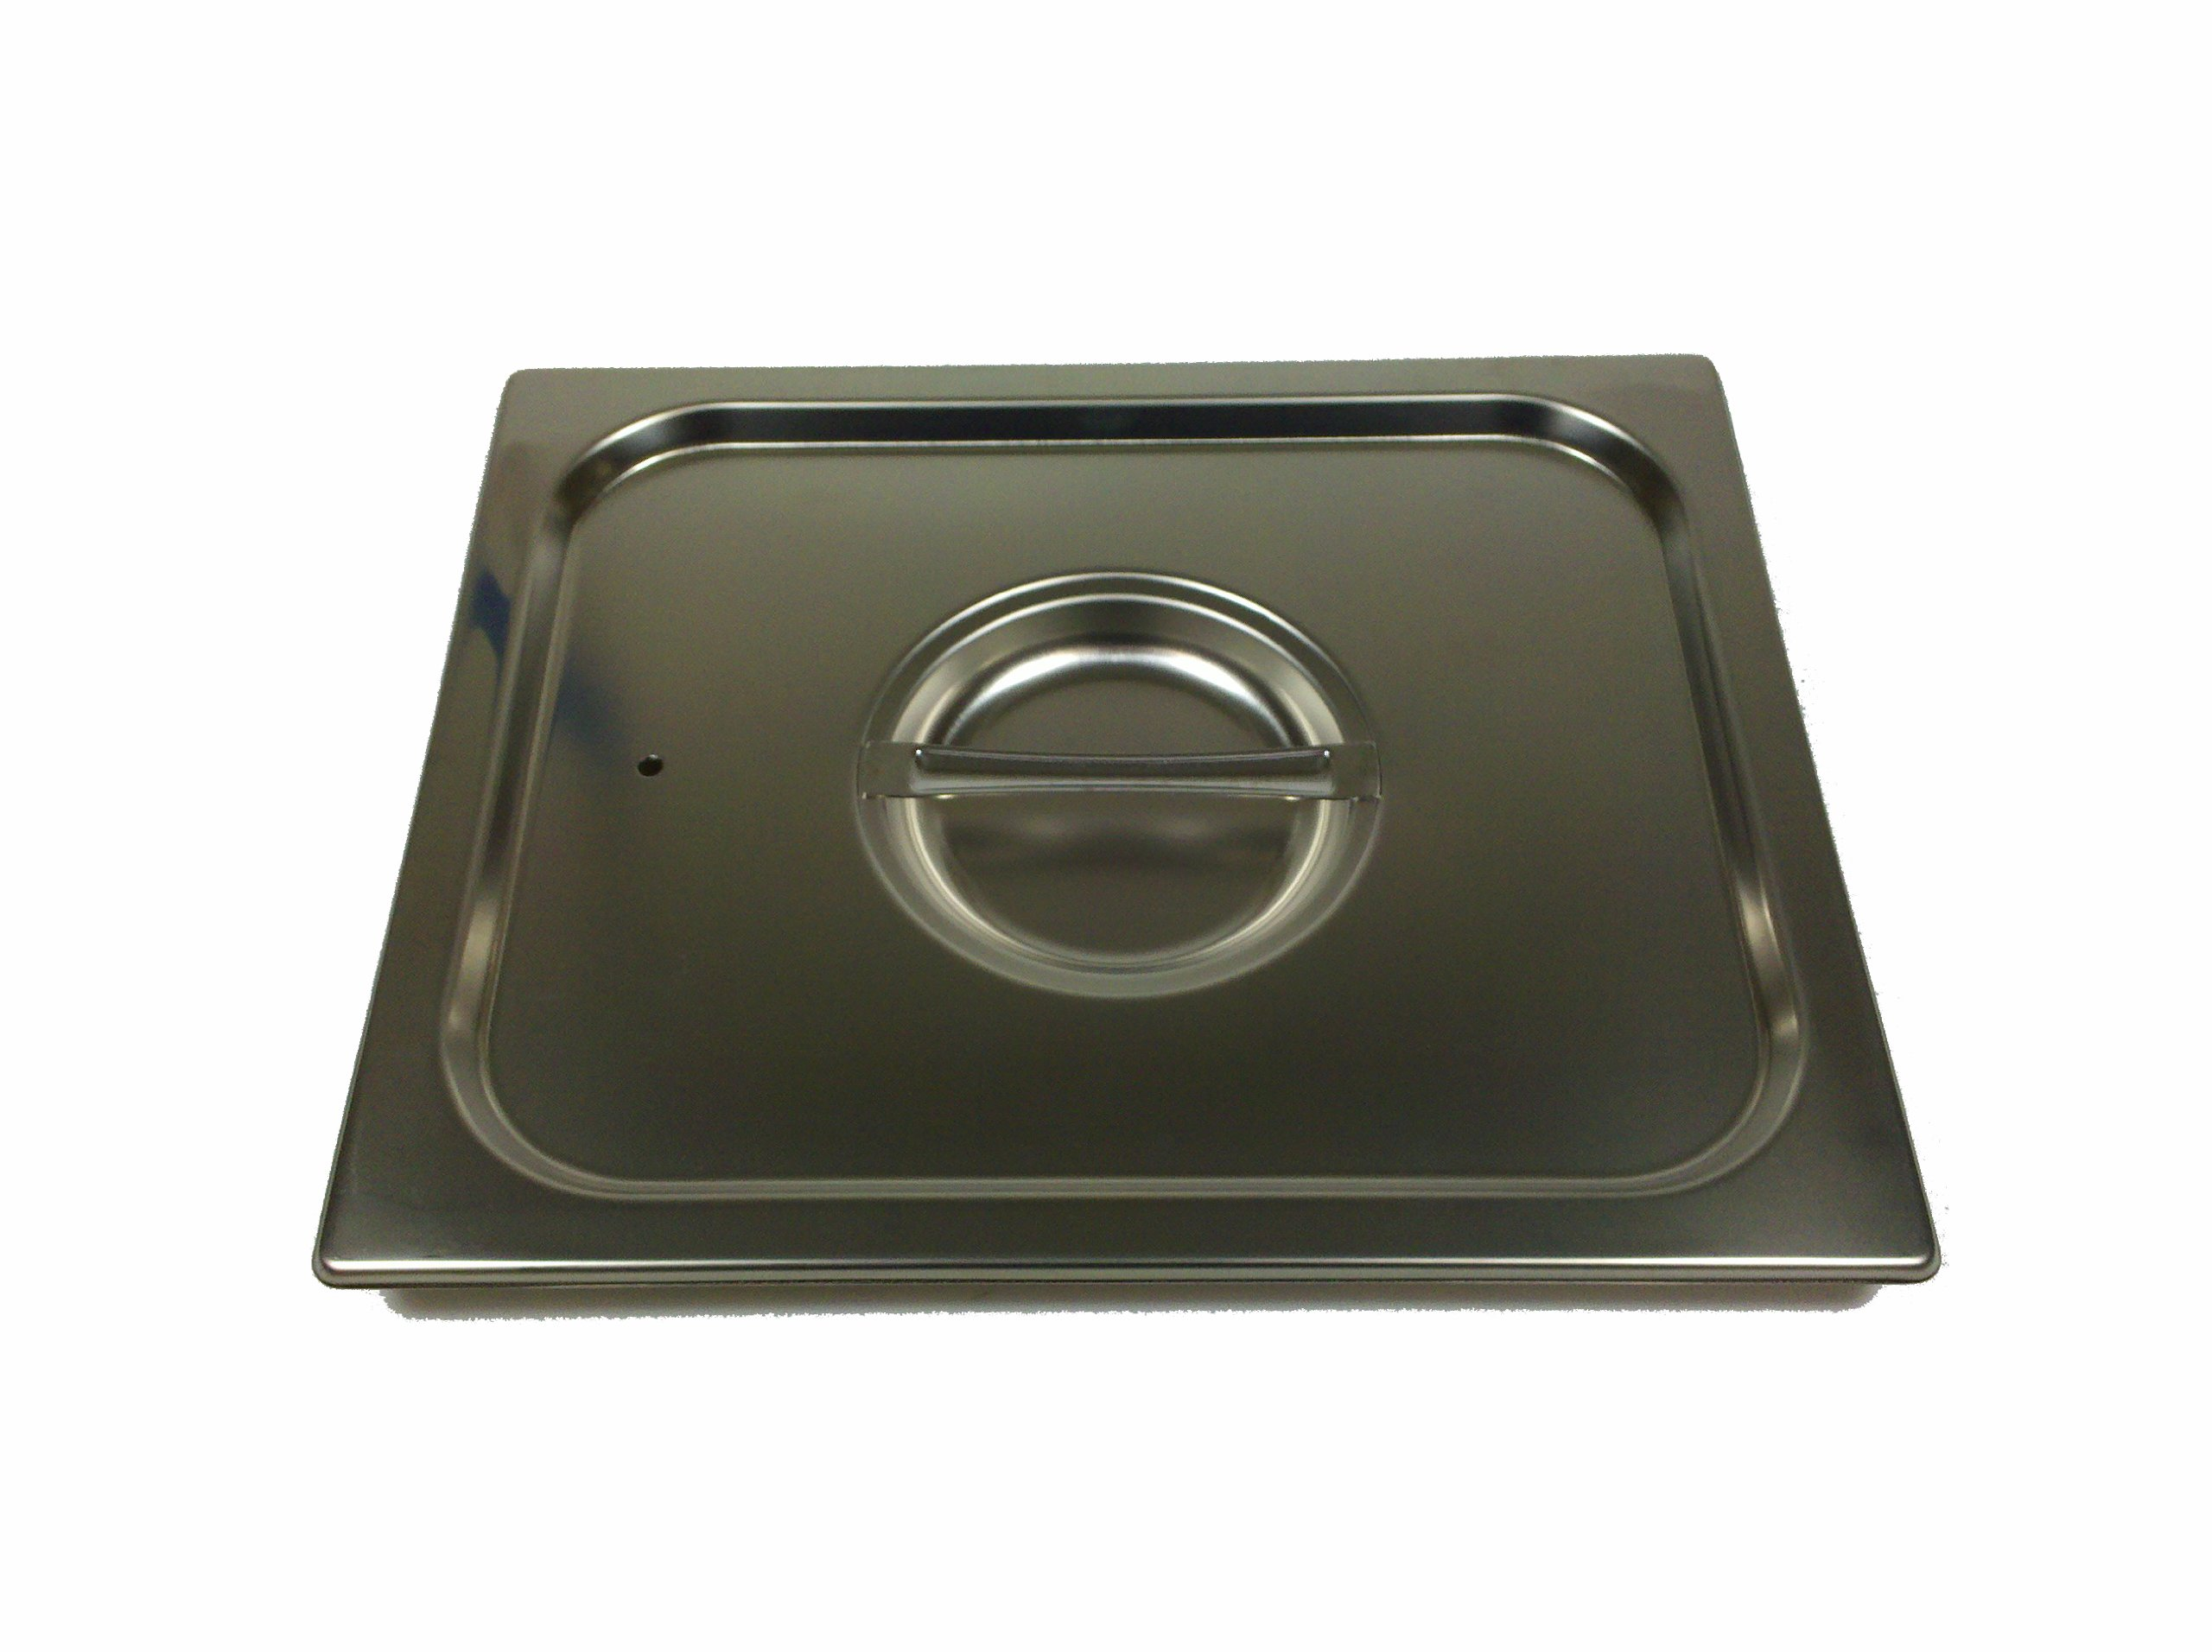 Paderno World Cuisine 20 7/8 inches by 12 3/4 inches Stainless-steel Standard Lid for Hotel Pan - 1/1